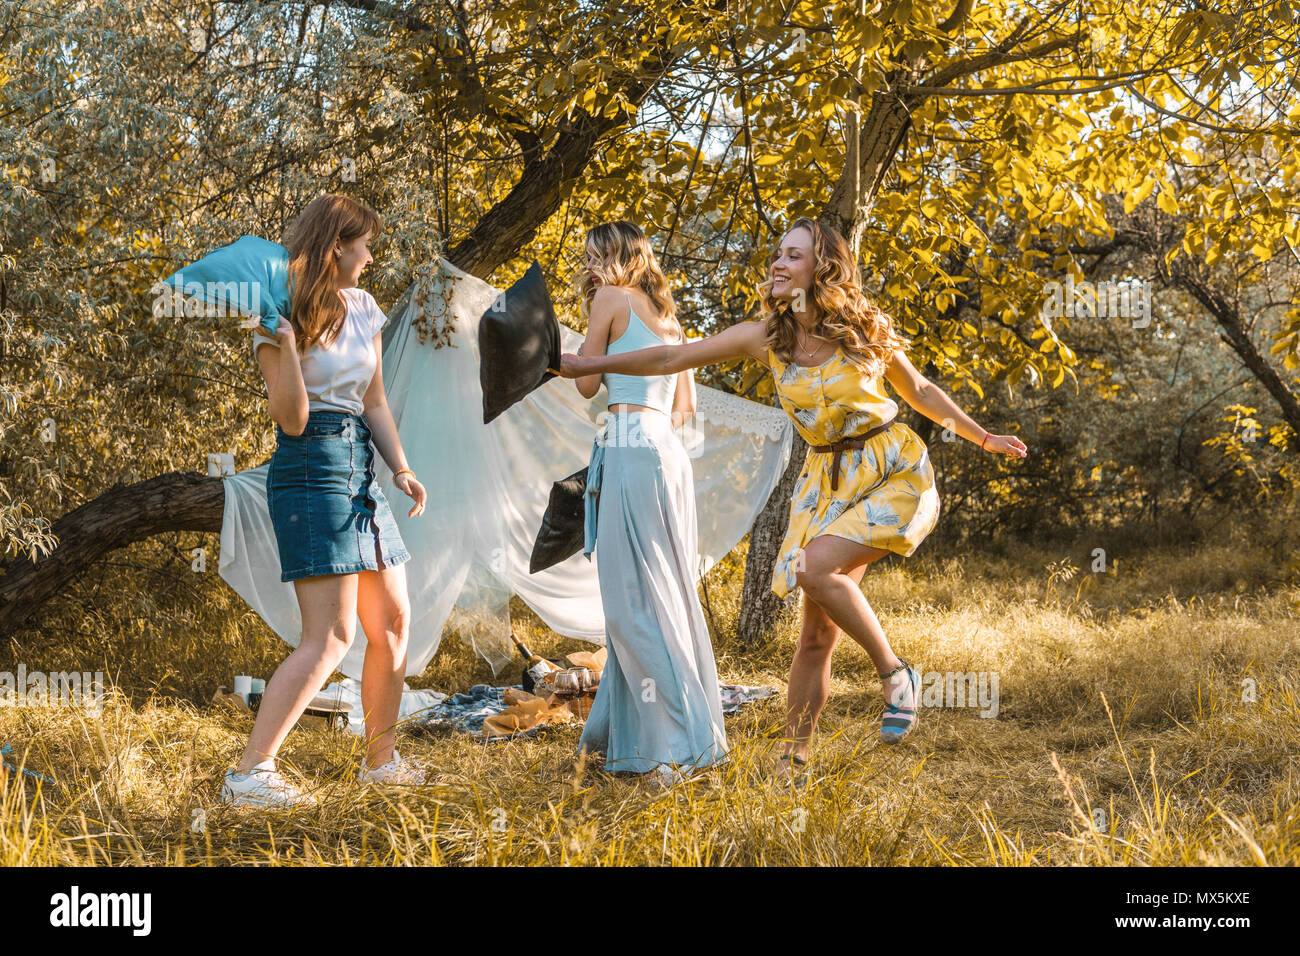 Group of girls friends making picnic outdoor. - Stock Image